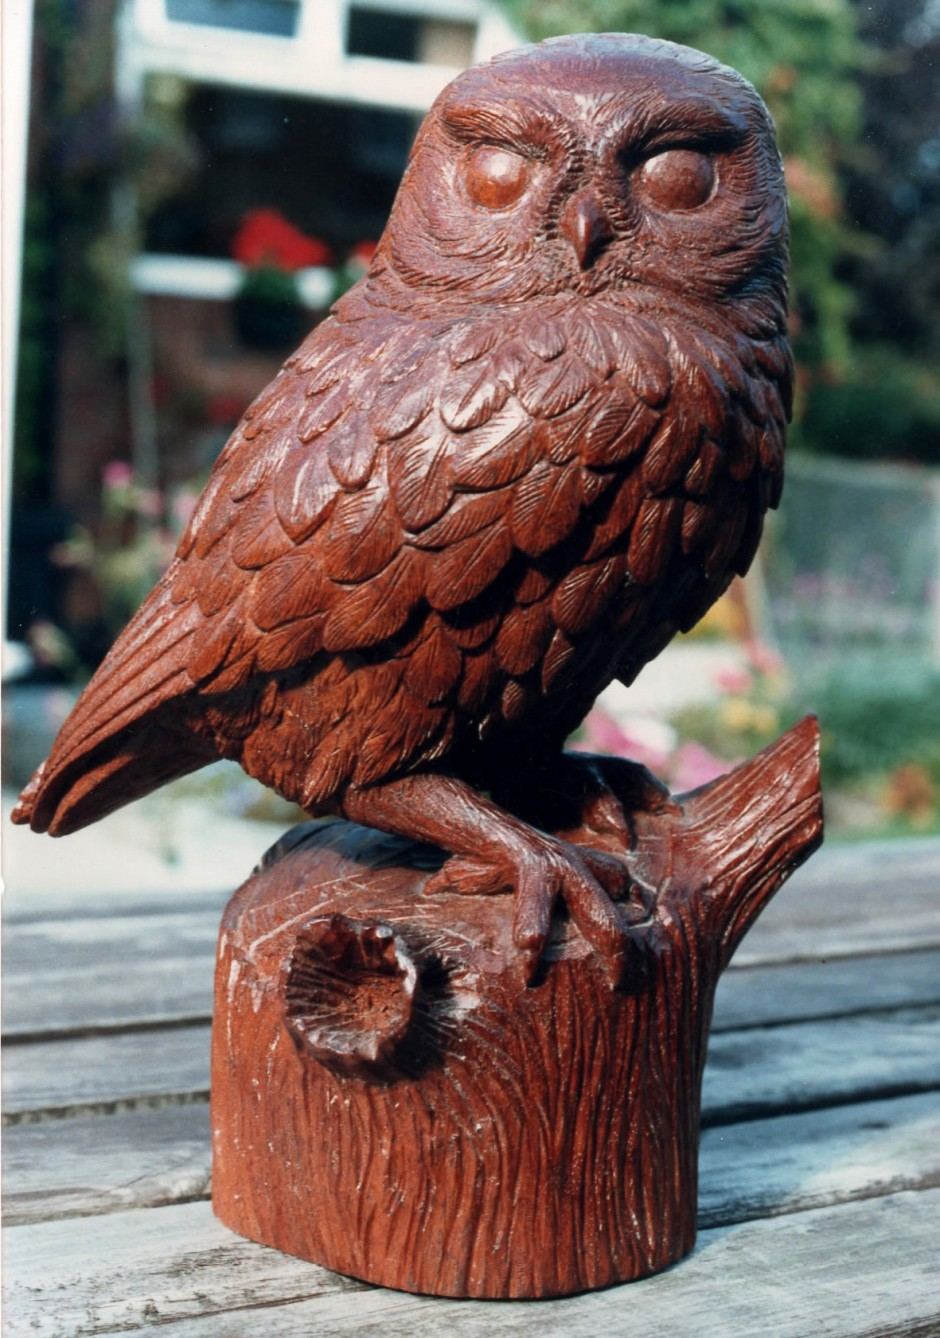 Little Owl In Mahogany - wooden owl, brown owl, wood carved owl, bees wax